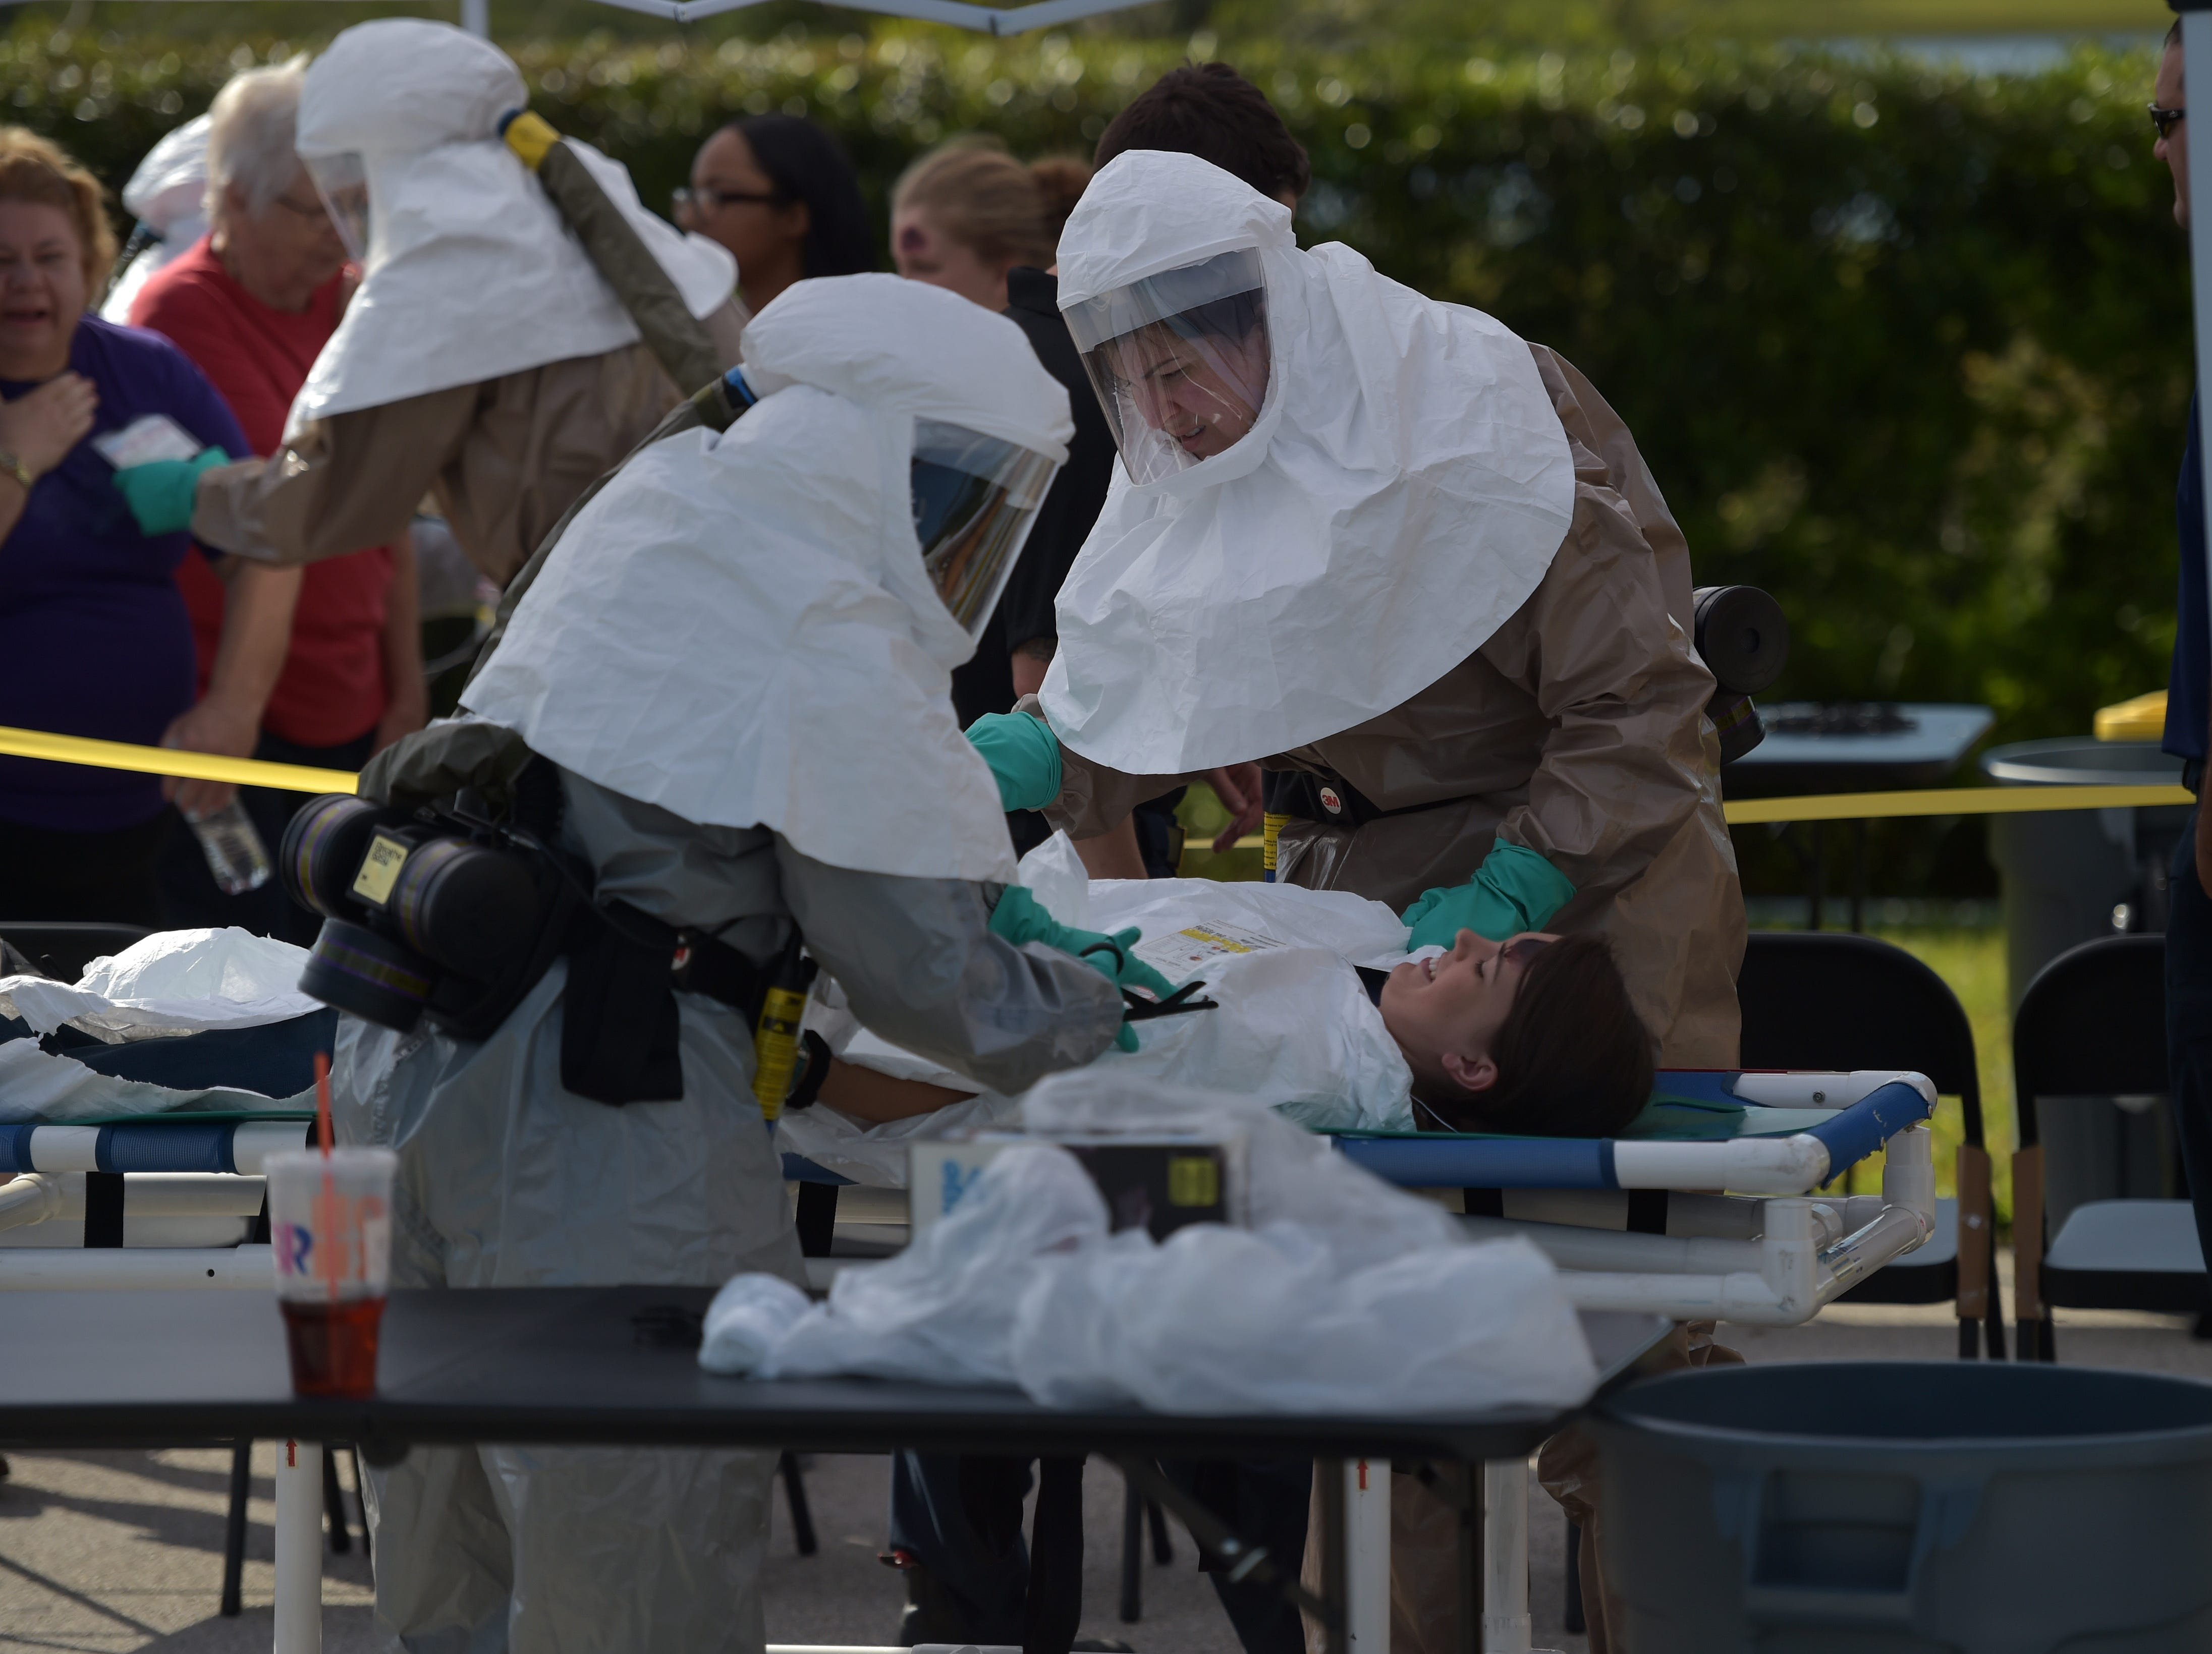 Hospital Emergency Response Team members, HERT, from Cleveland Clinic Tradition receive victims involved in a mock terrorist incident, preparing them to go through a decontamination process before admission into the hospital ER during a disaster preparedness exercise on Thursday, April 11, 2019 in the Tradition development of Port St. Lucie. All the Cleveland Martin Heath Hospitals, along with the Central Florida Disaster Medical Coalition are participating in the disaster preparedness exercises.